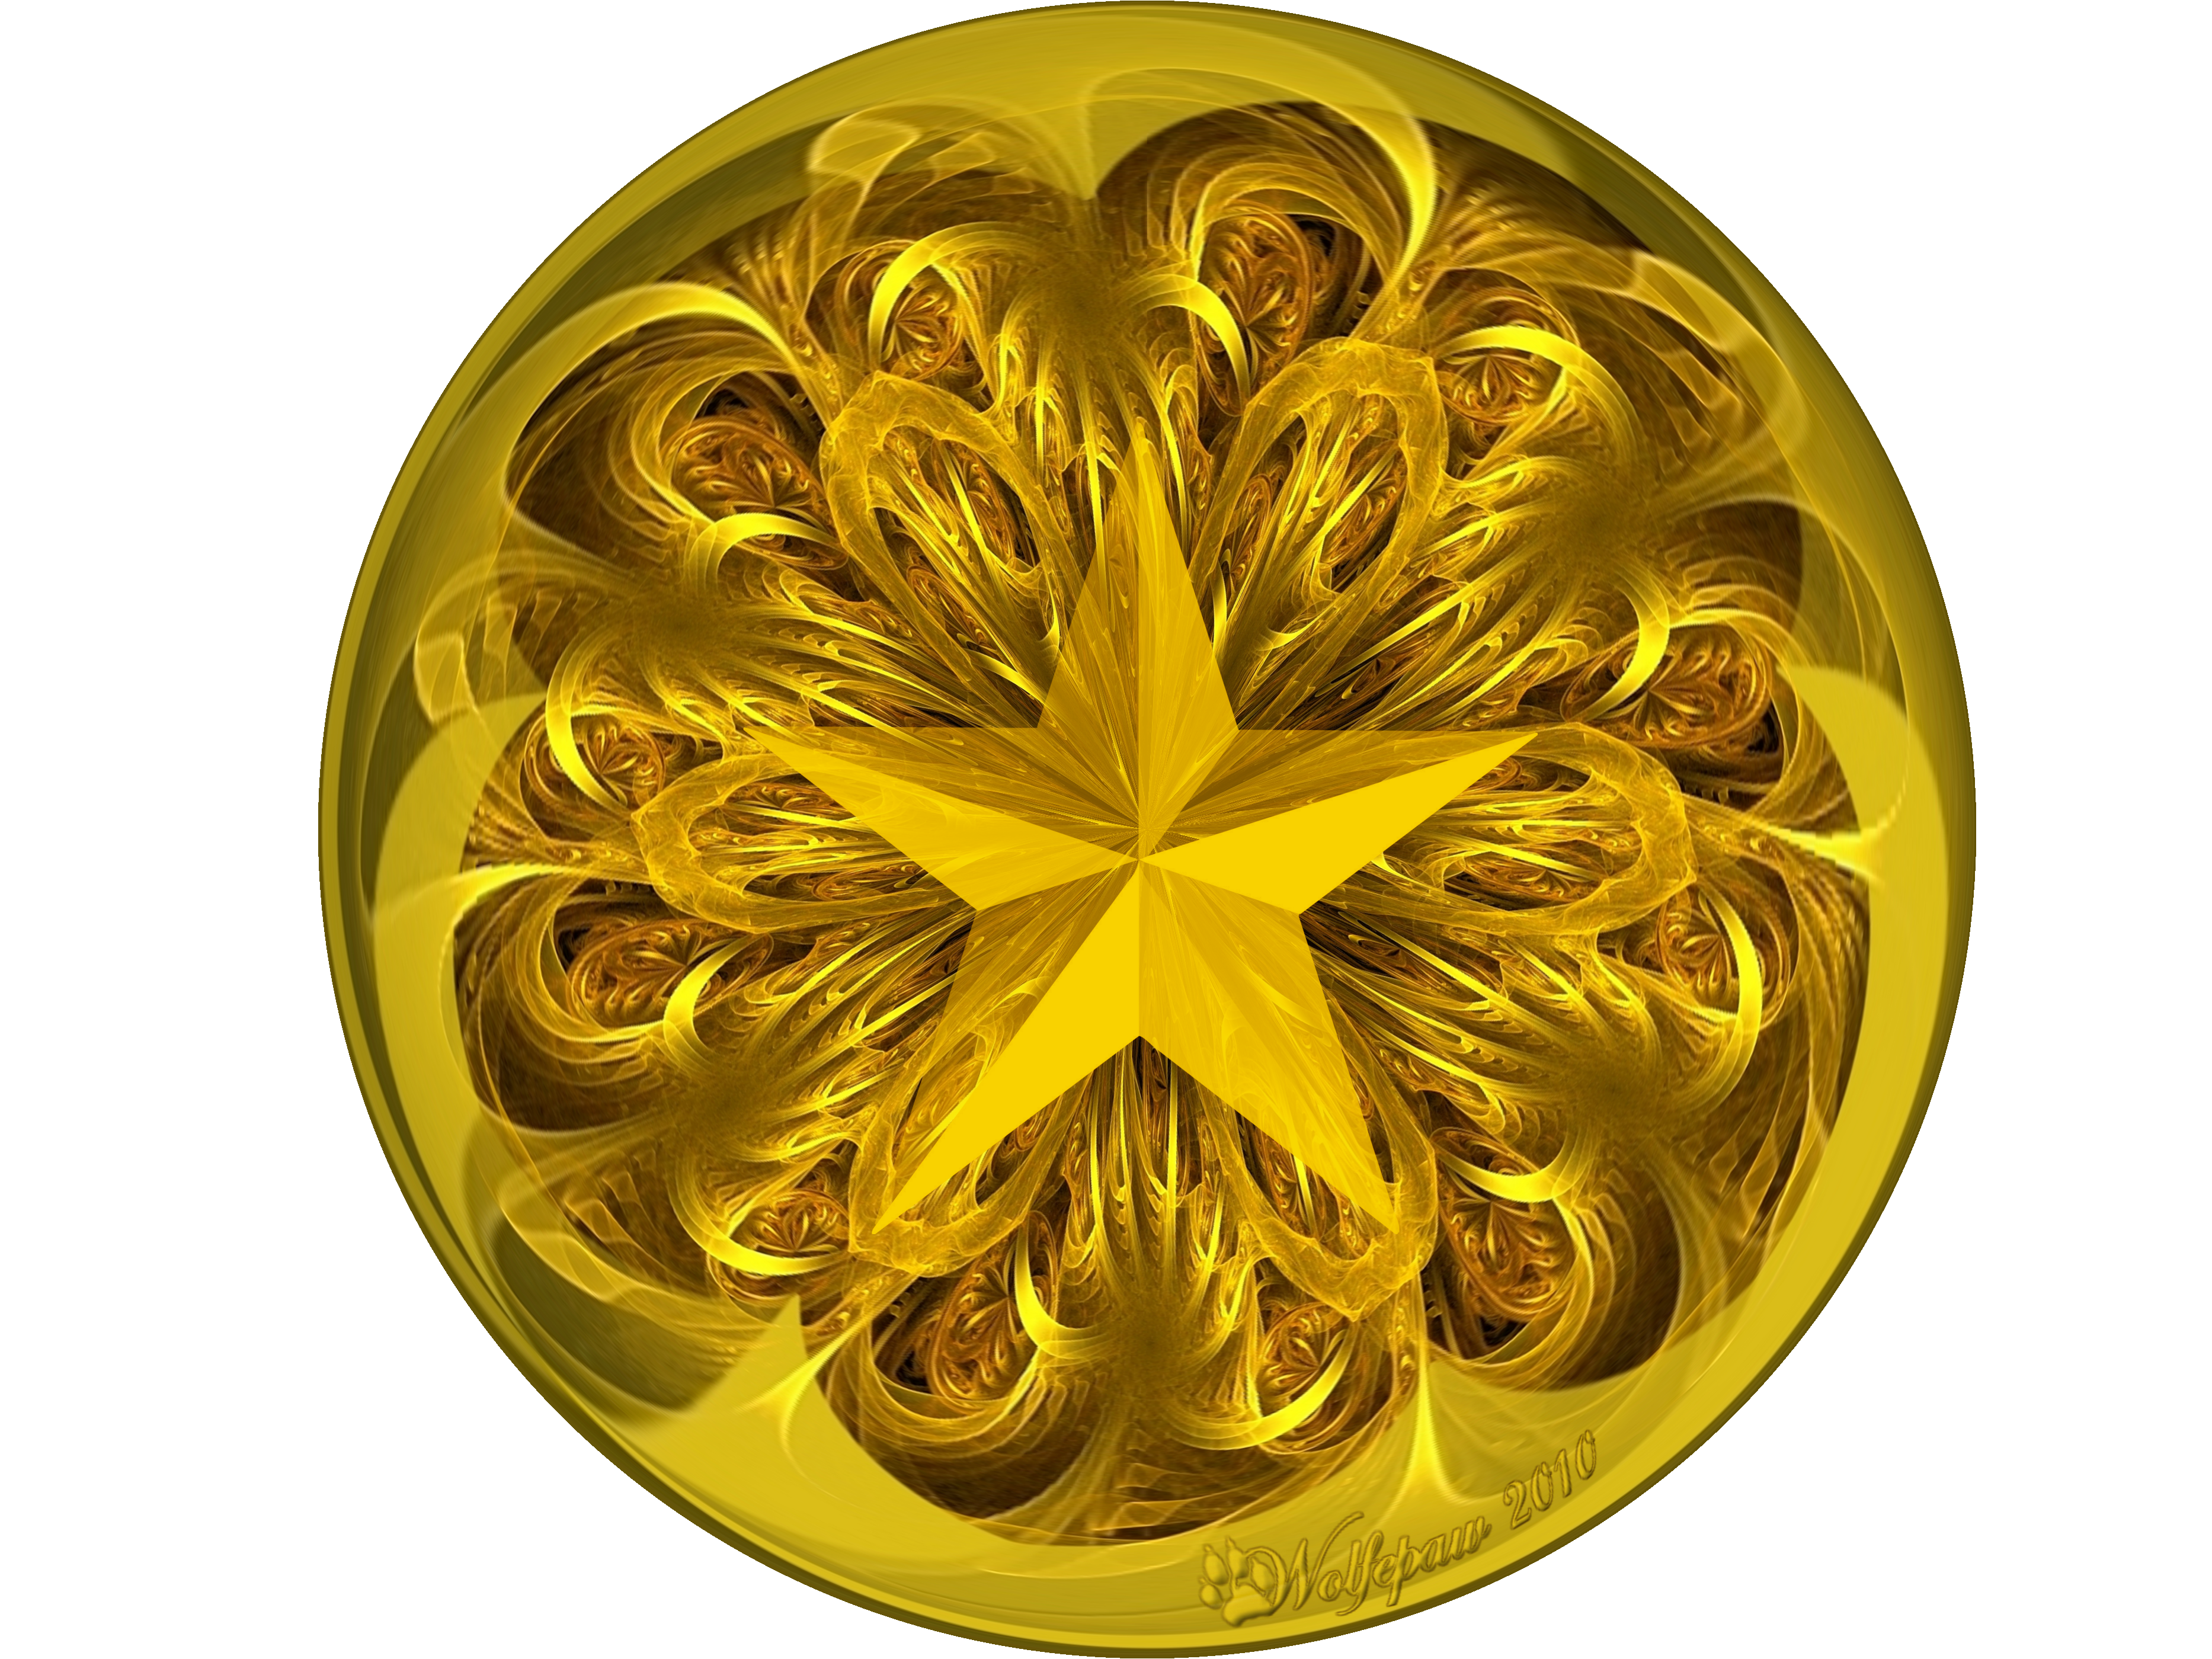 Gold star ornaments - Gold Star Ornament By Wolfepaw Gold Star Ornament By Wolfepaw